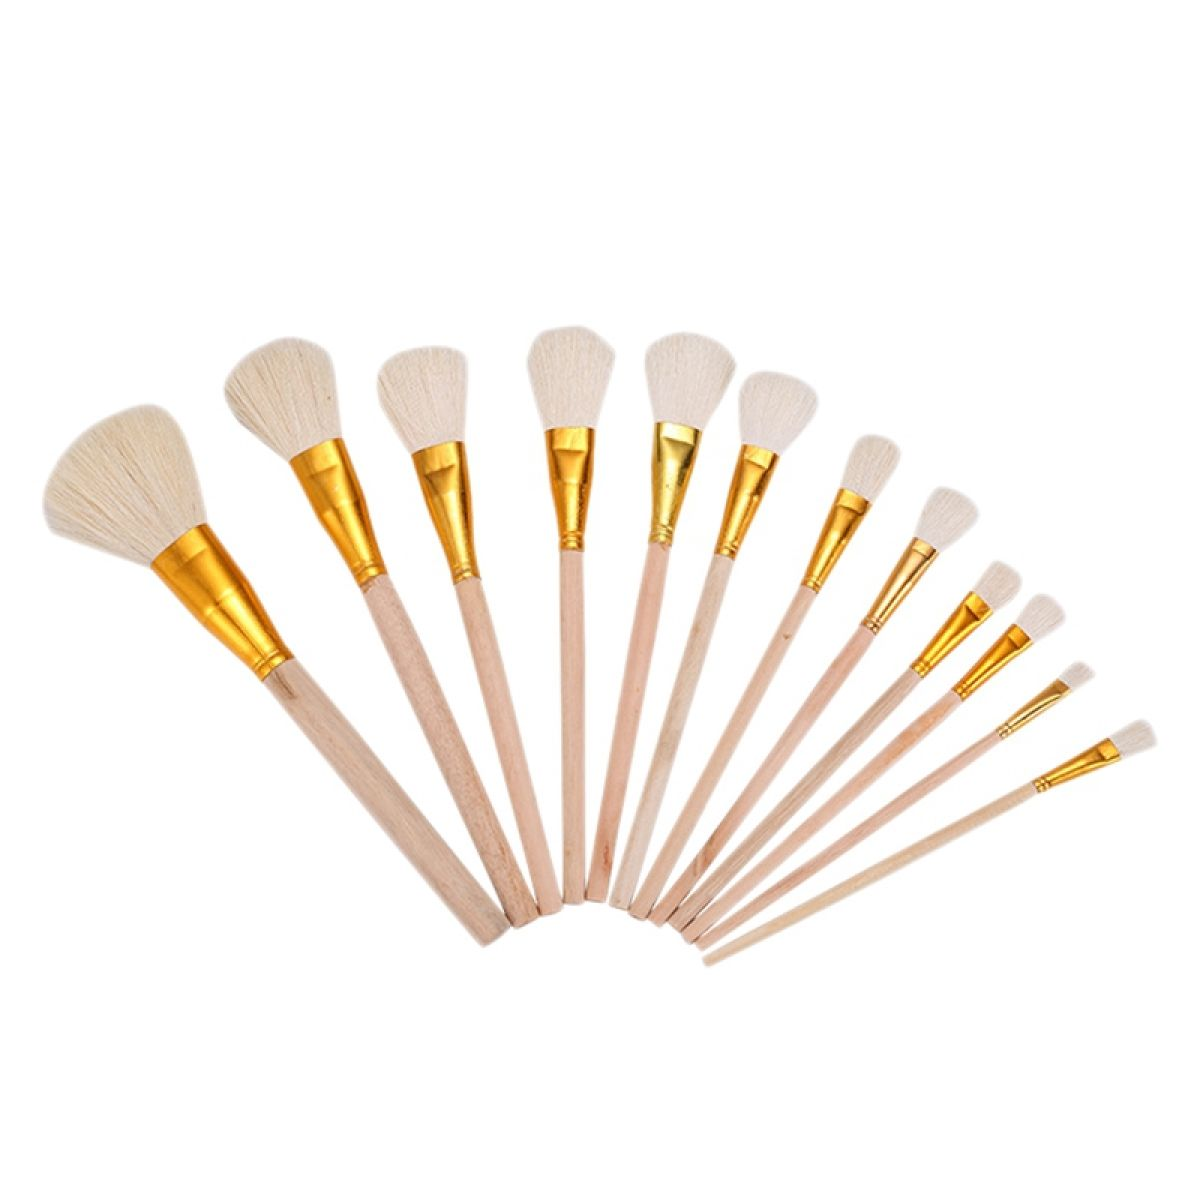 12 Pcs Cleaning Wooden Brushes Shaper Artist Paint For Diy Craft Pottery Tool Clay Sculpture Ceramic Painting Tools Lazada